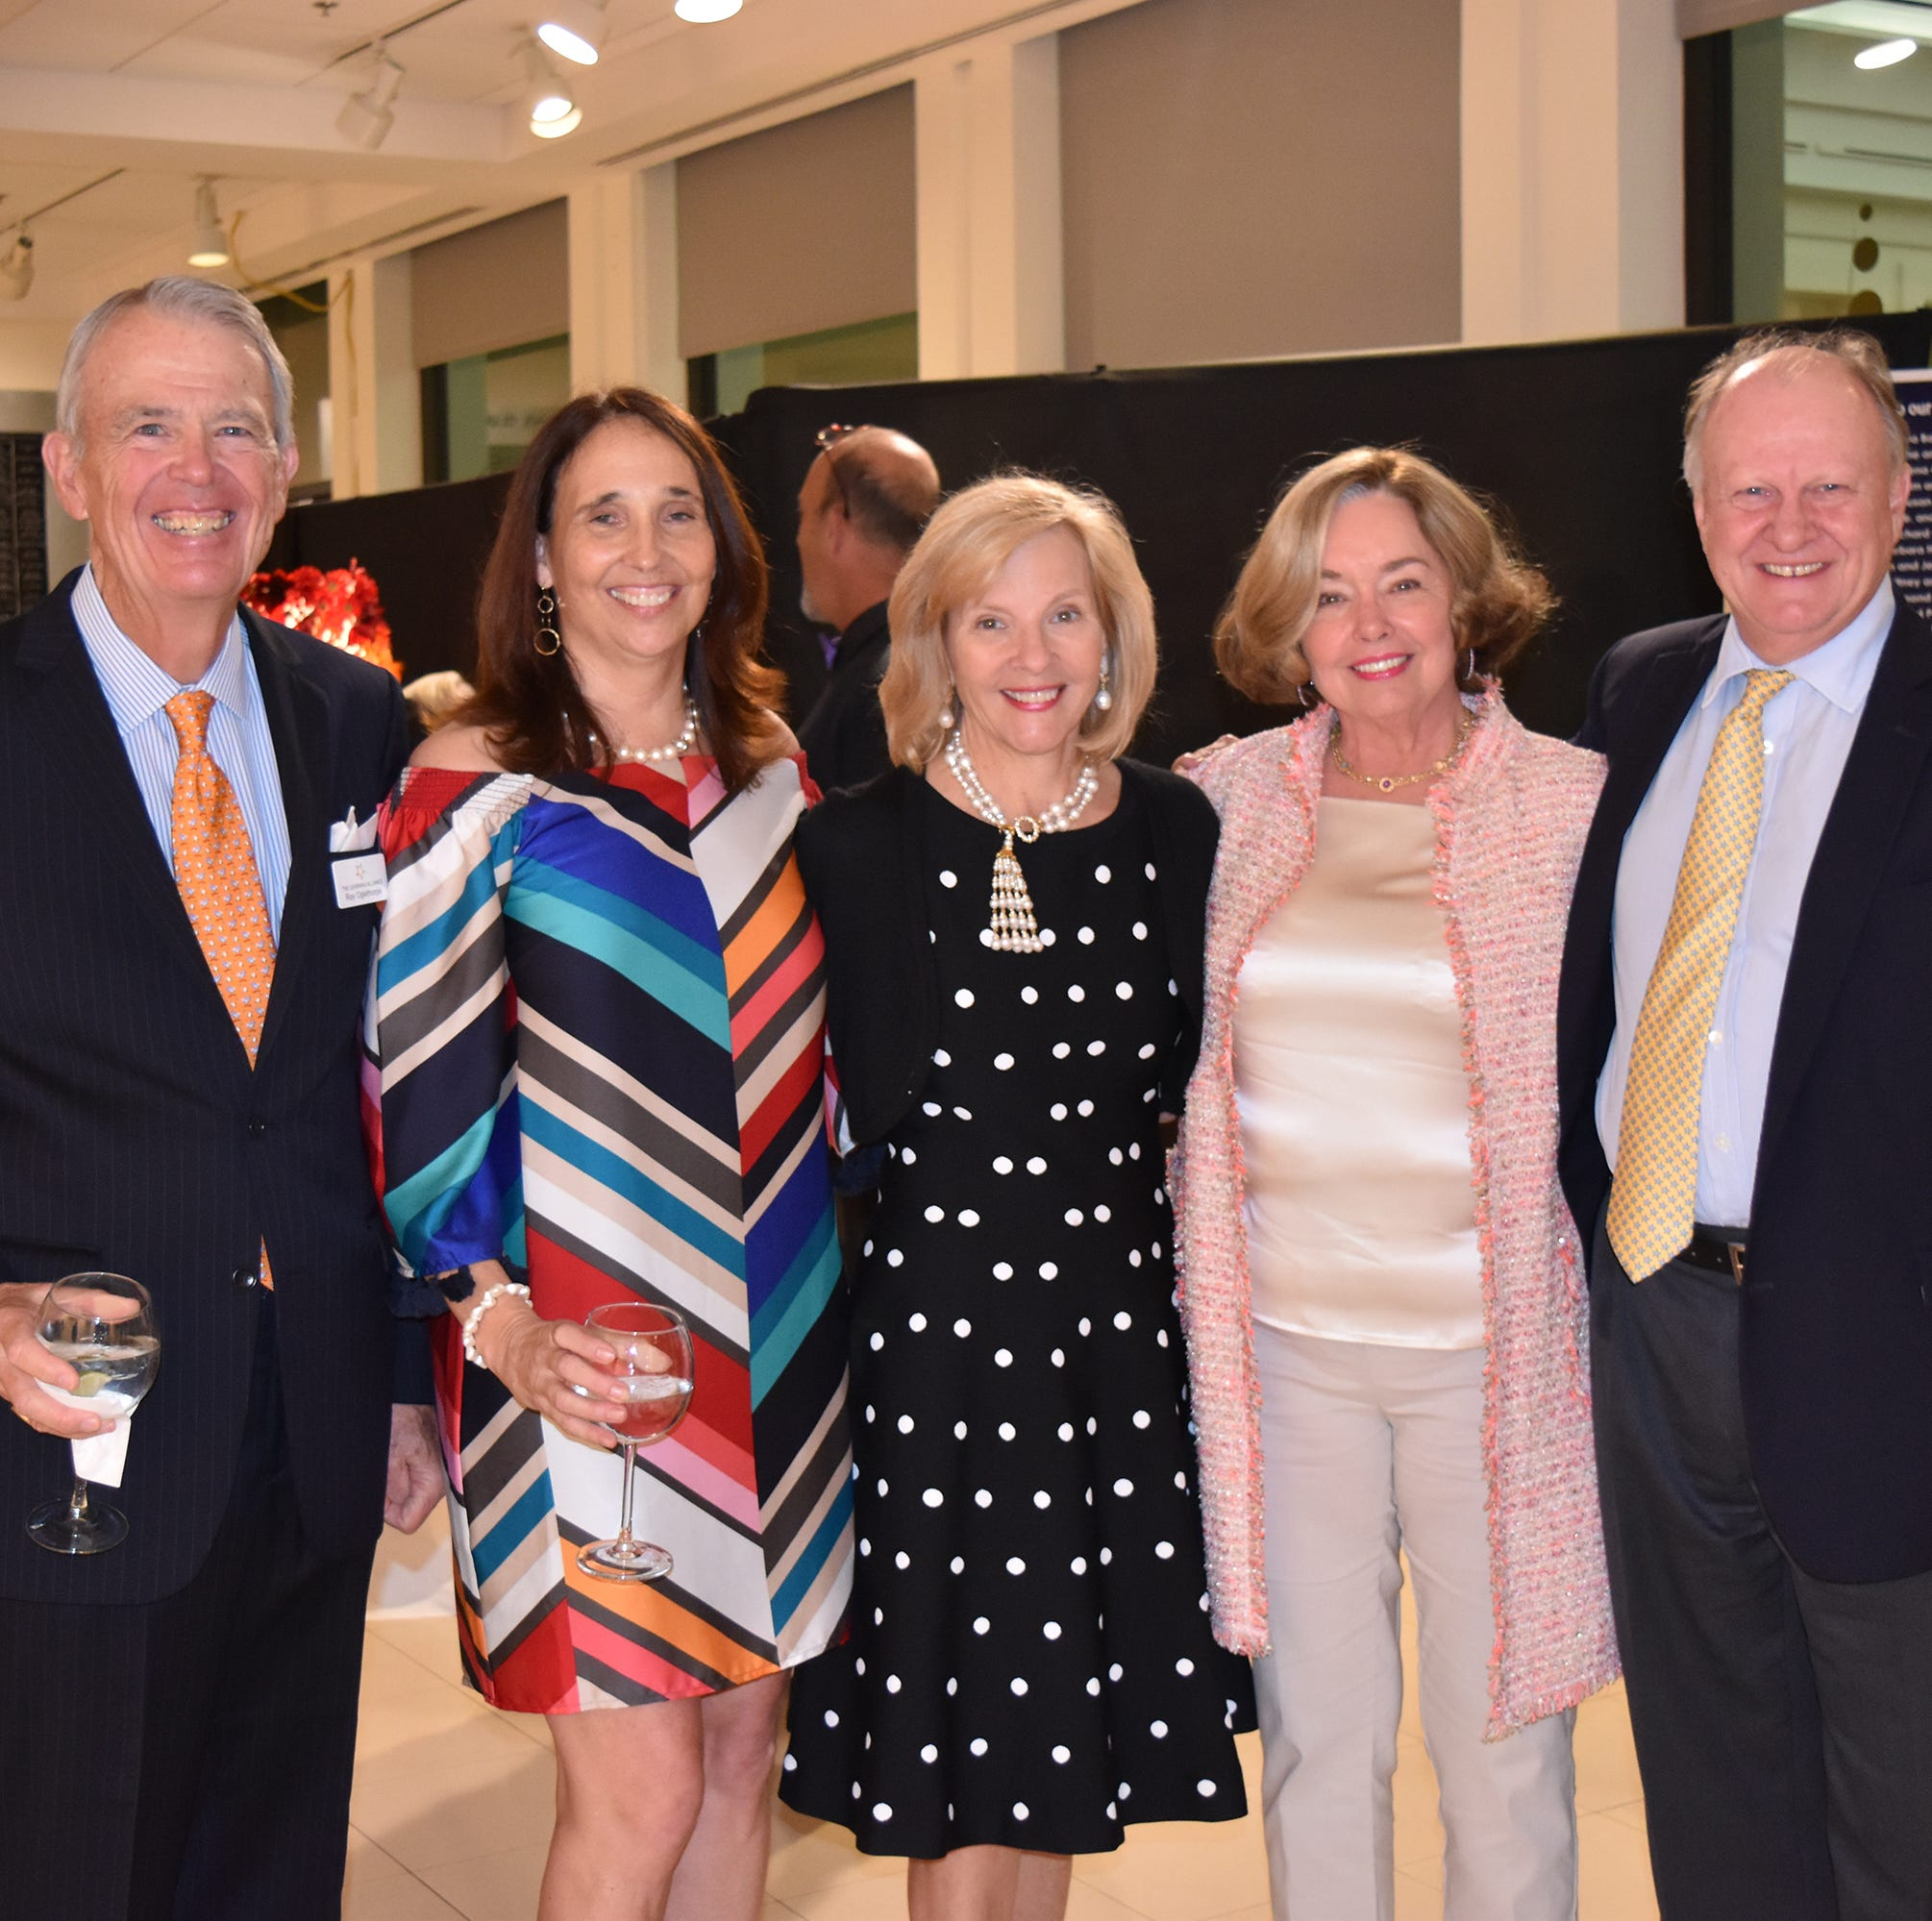 The Learning Alliance's 2019 Gala celebrates transforming lives through literacy